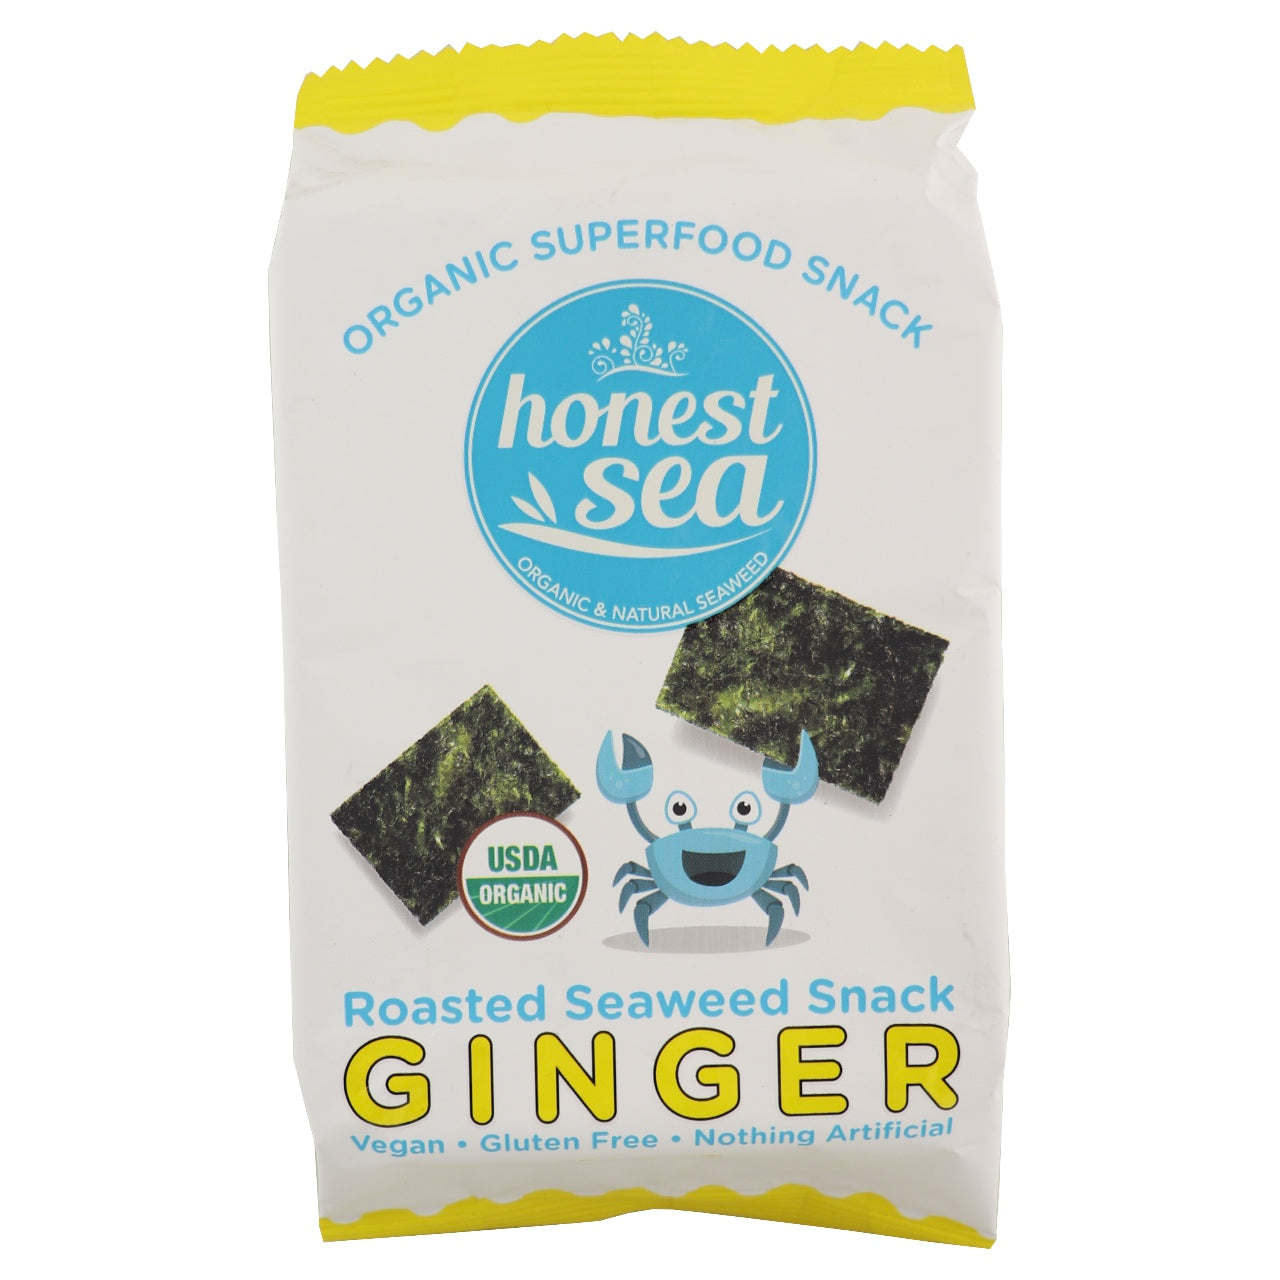 Honest Sea Seaweed Snack -Ginger